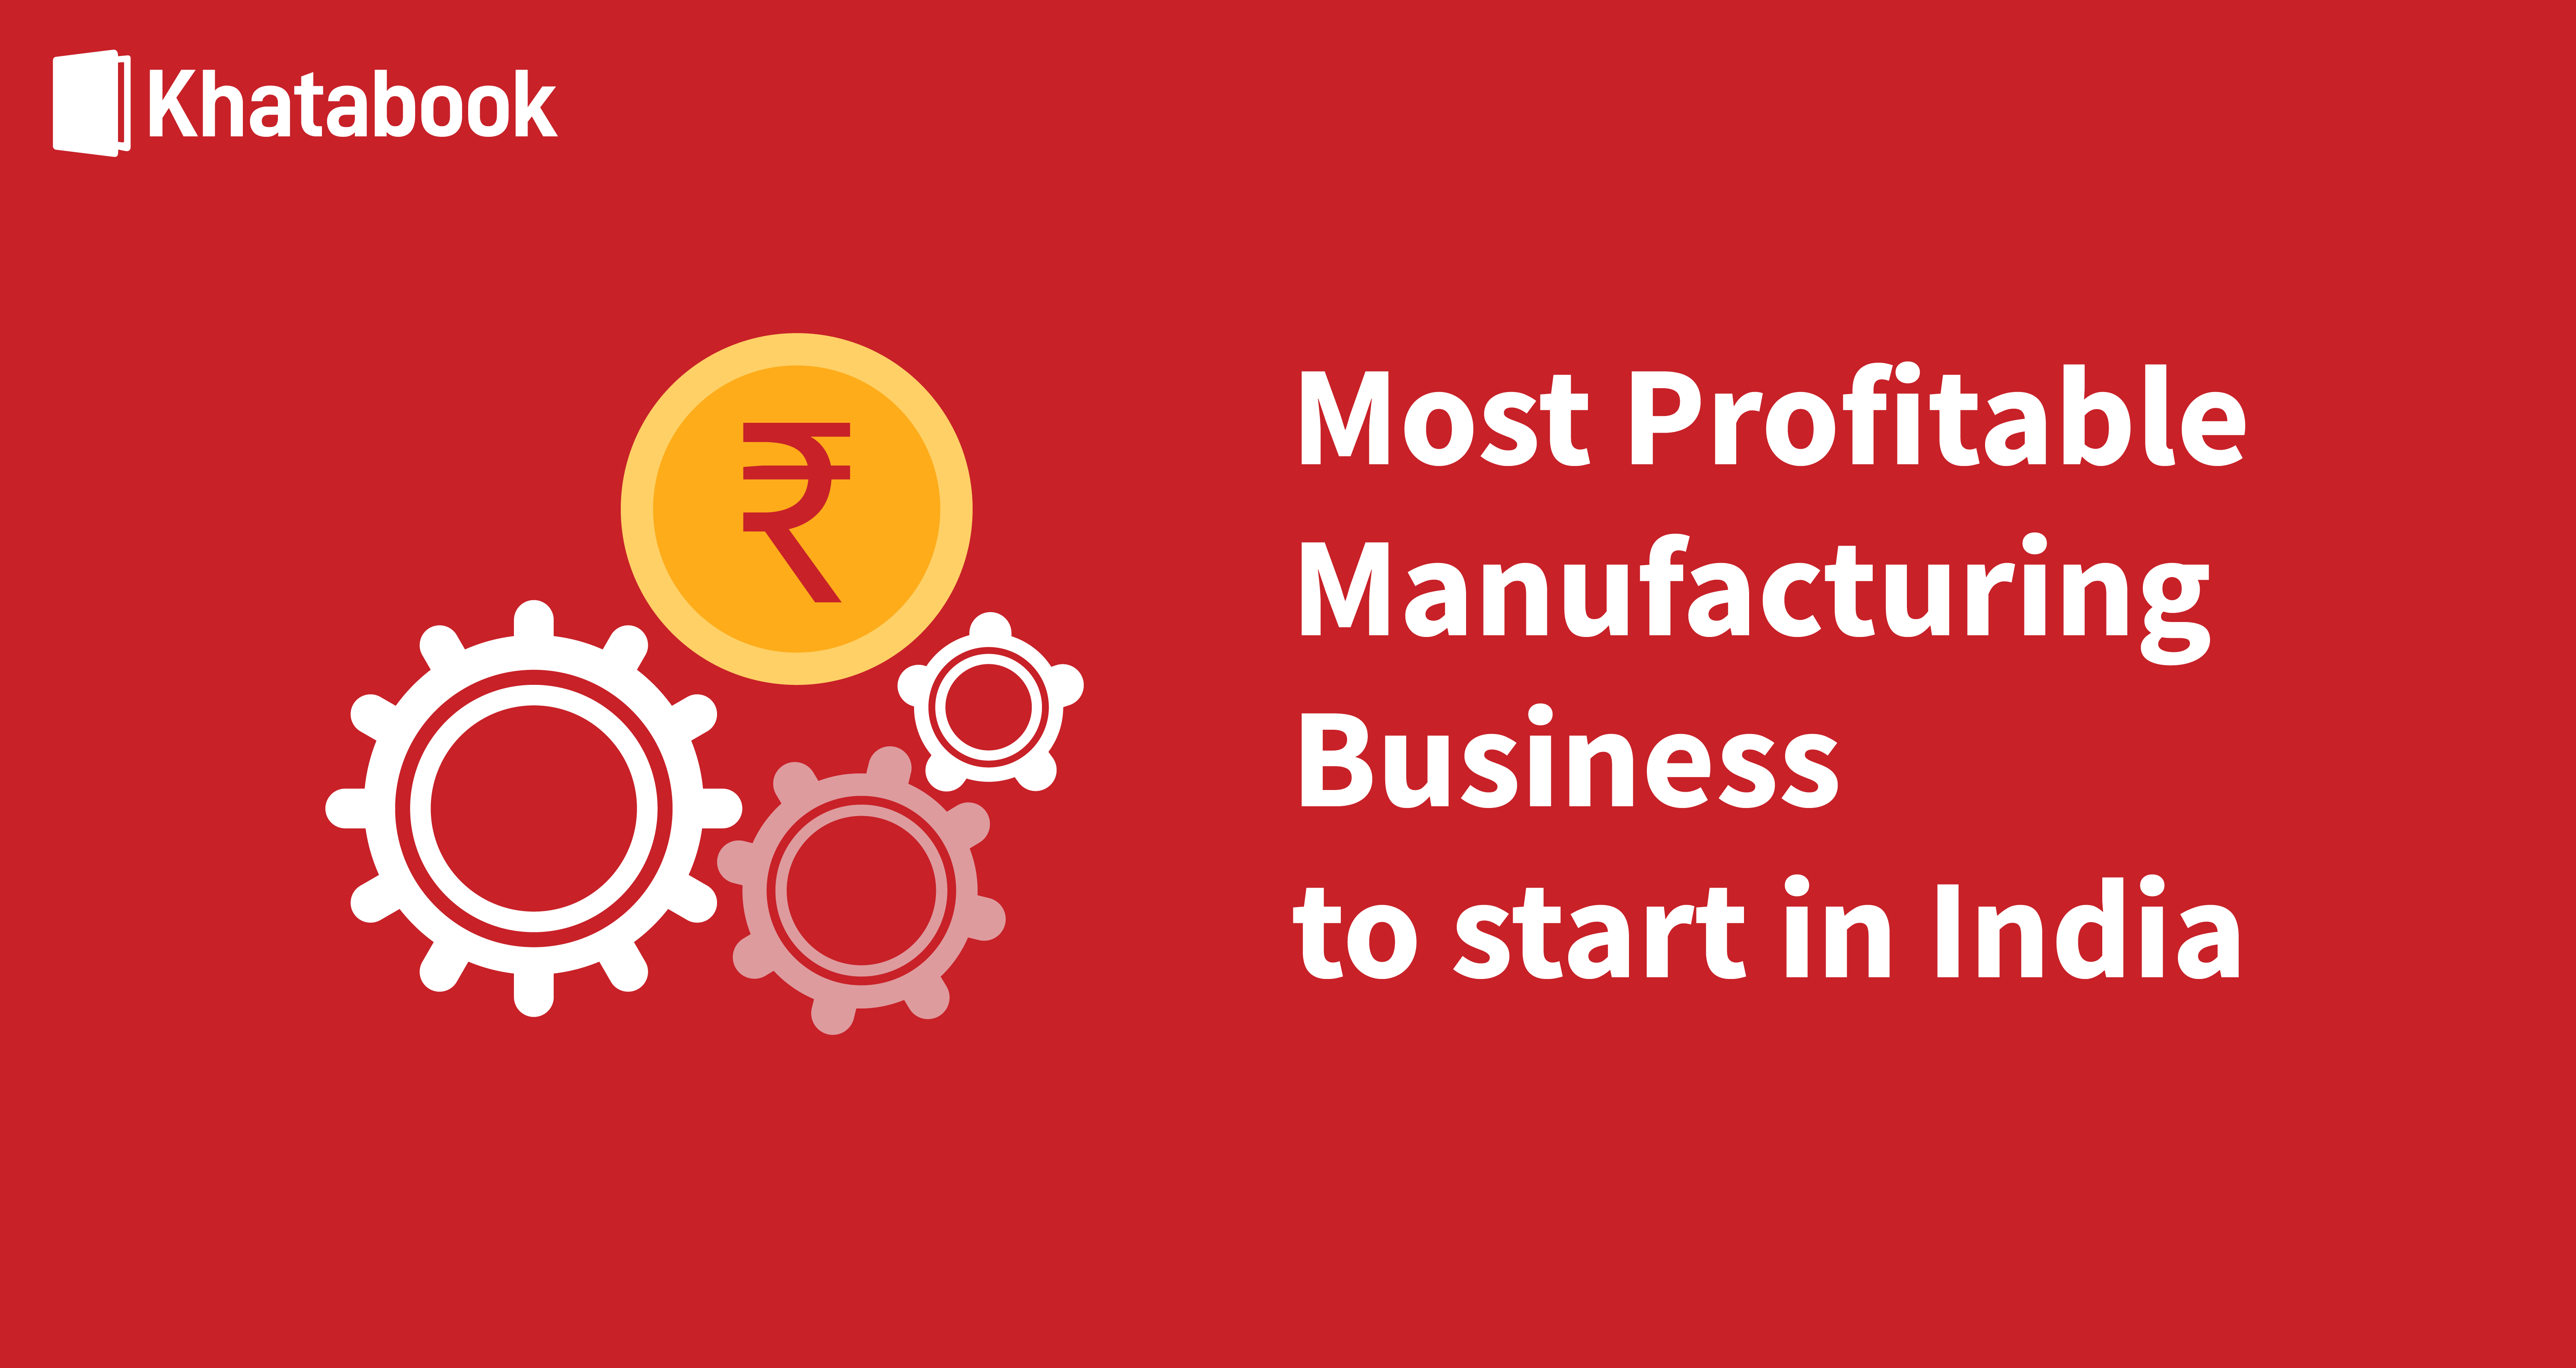 Most Profitable Manufacturing Business to Start in India